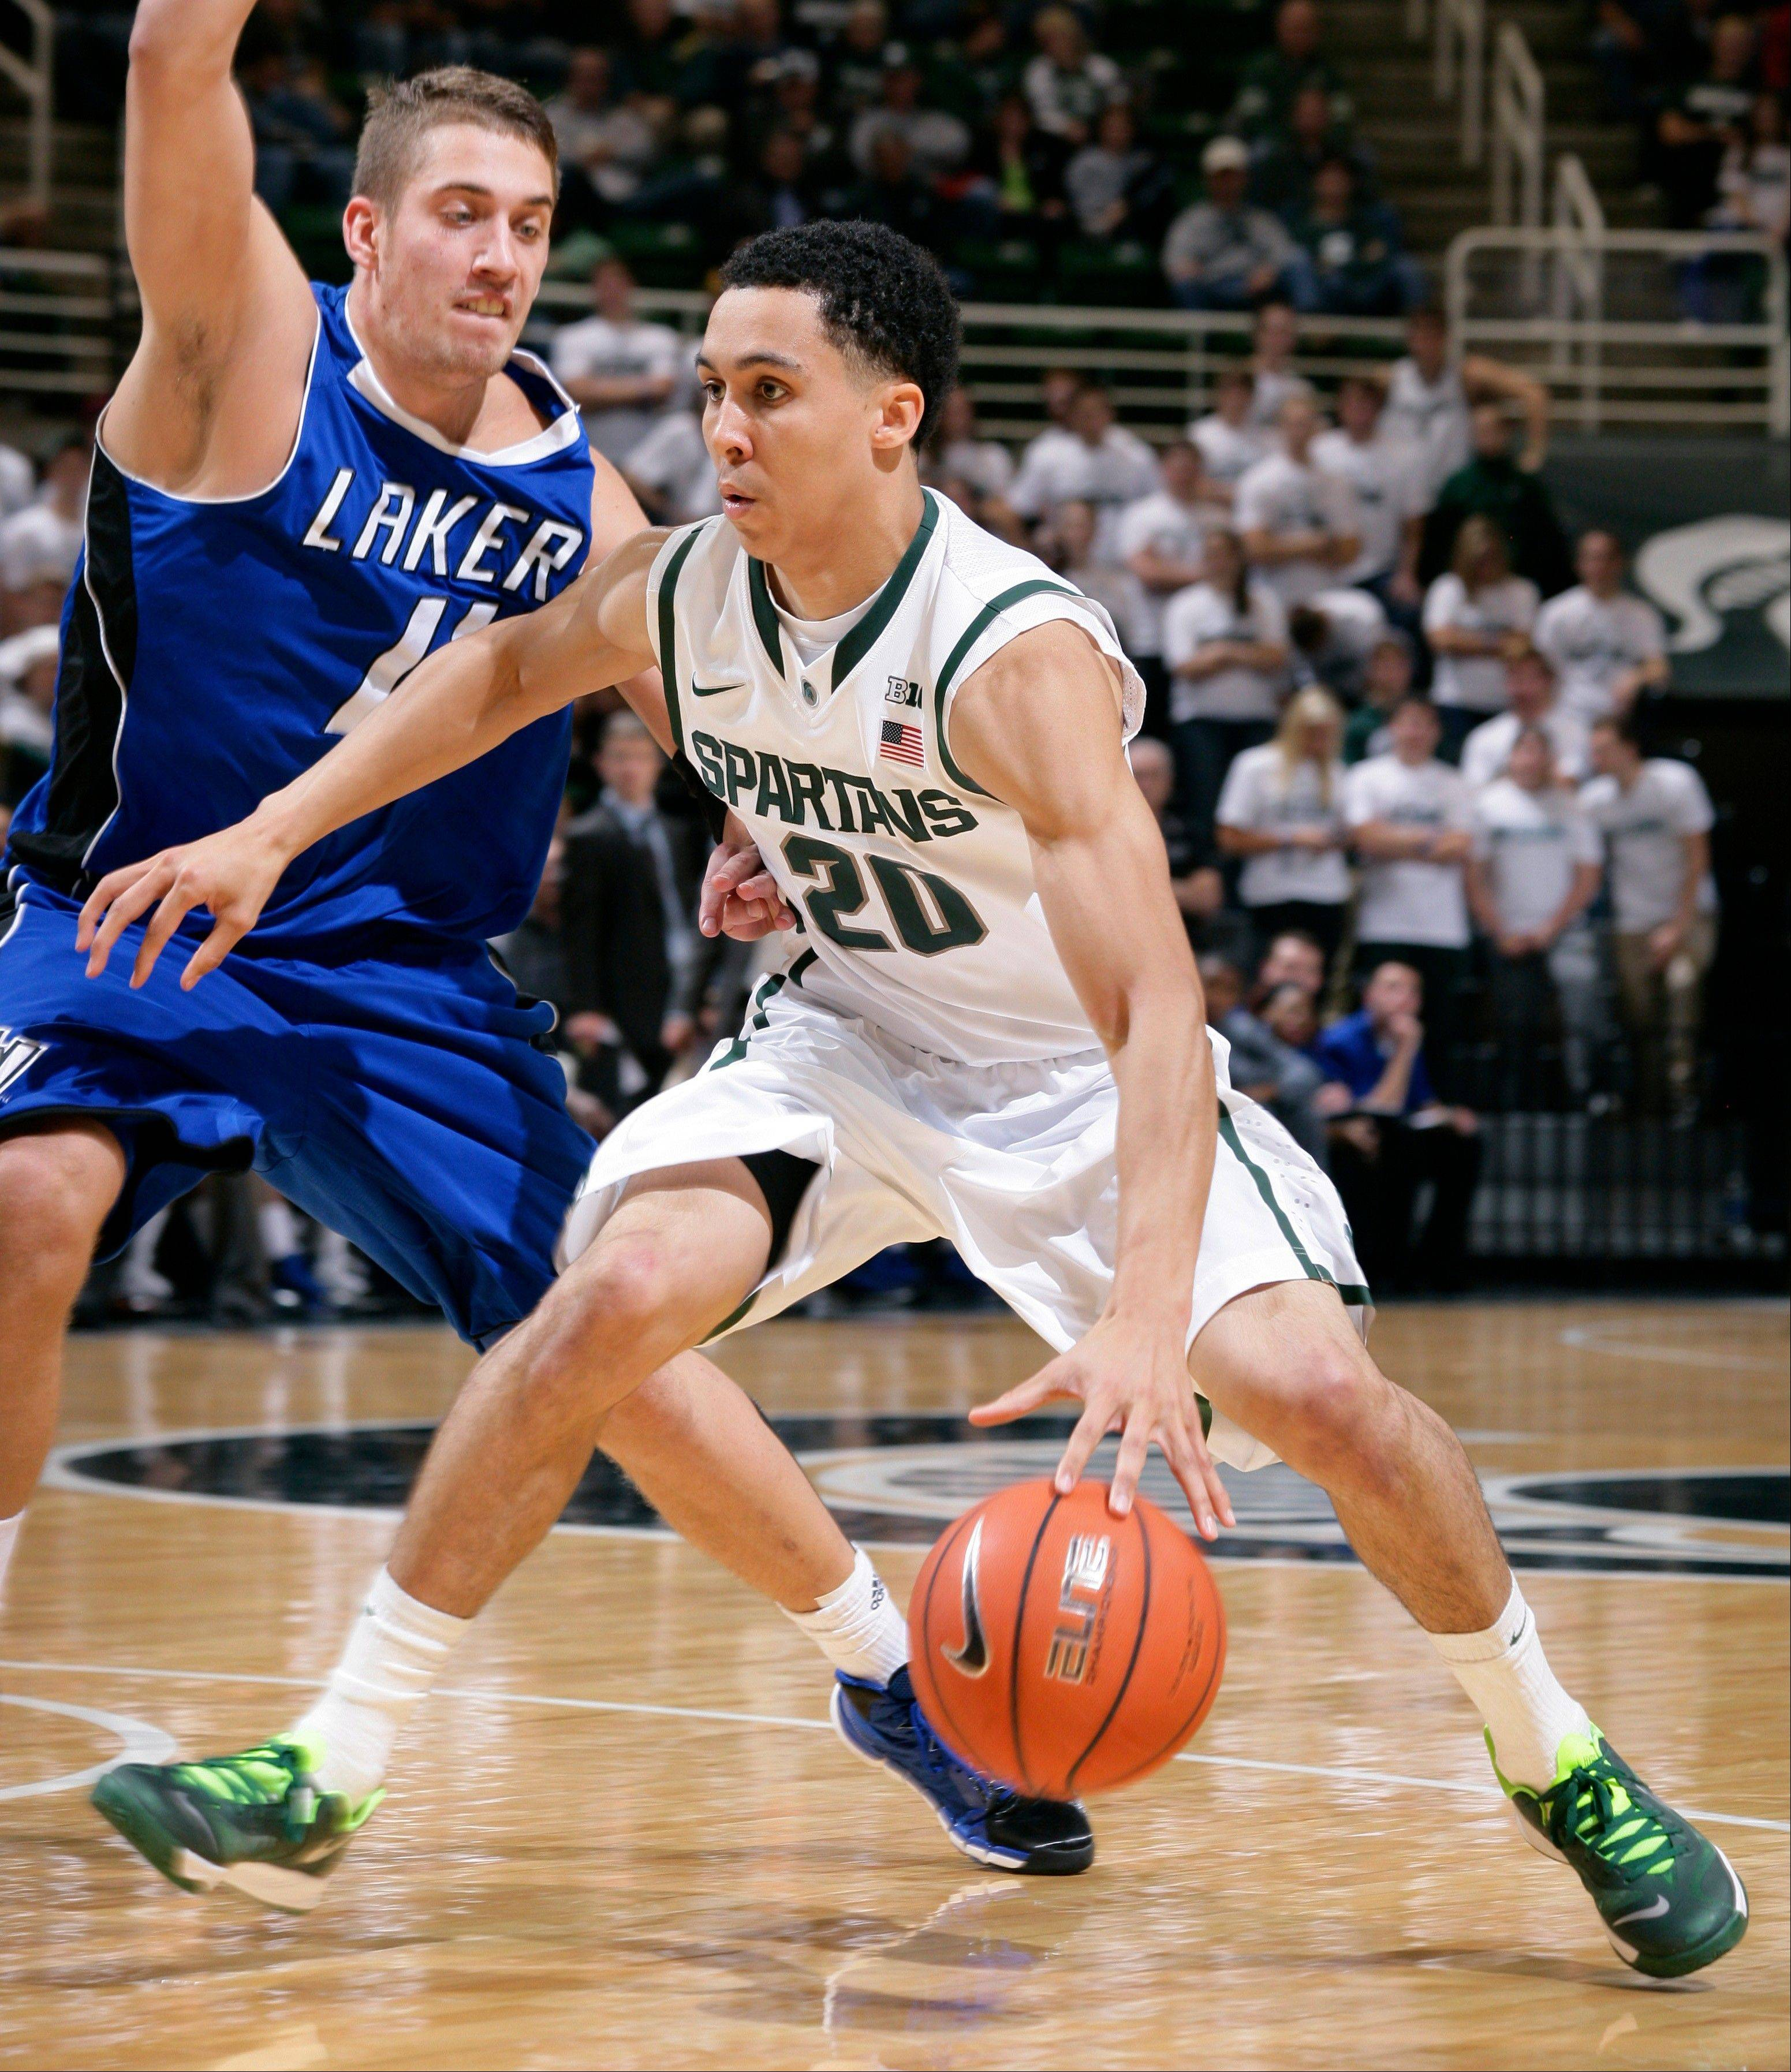 Michigan State�s Travis Trice drives against Grand Valley State�s Ernijs Ansons during an exhibition game on Tuesday in East Lansing, Mich. The Spartans are the preseason pick to win the Big Ten.